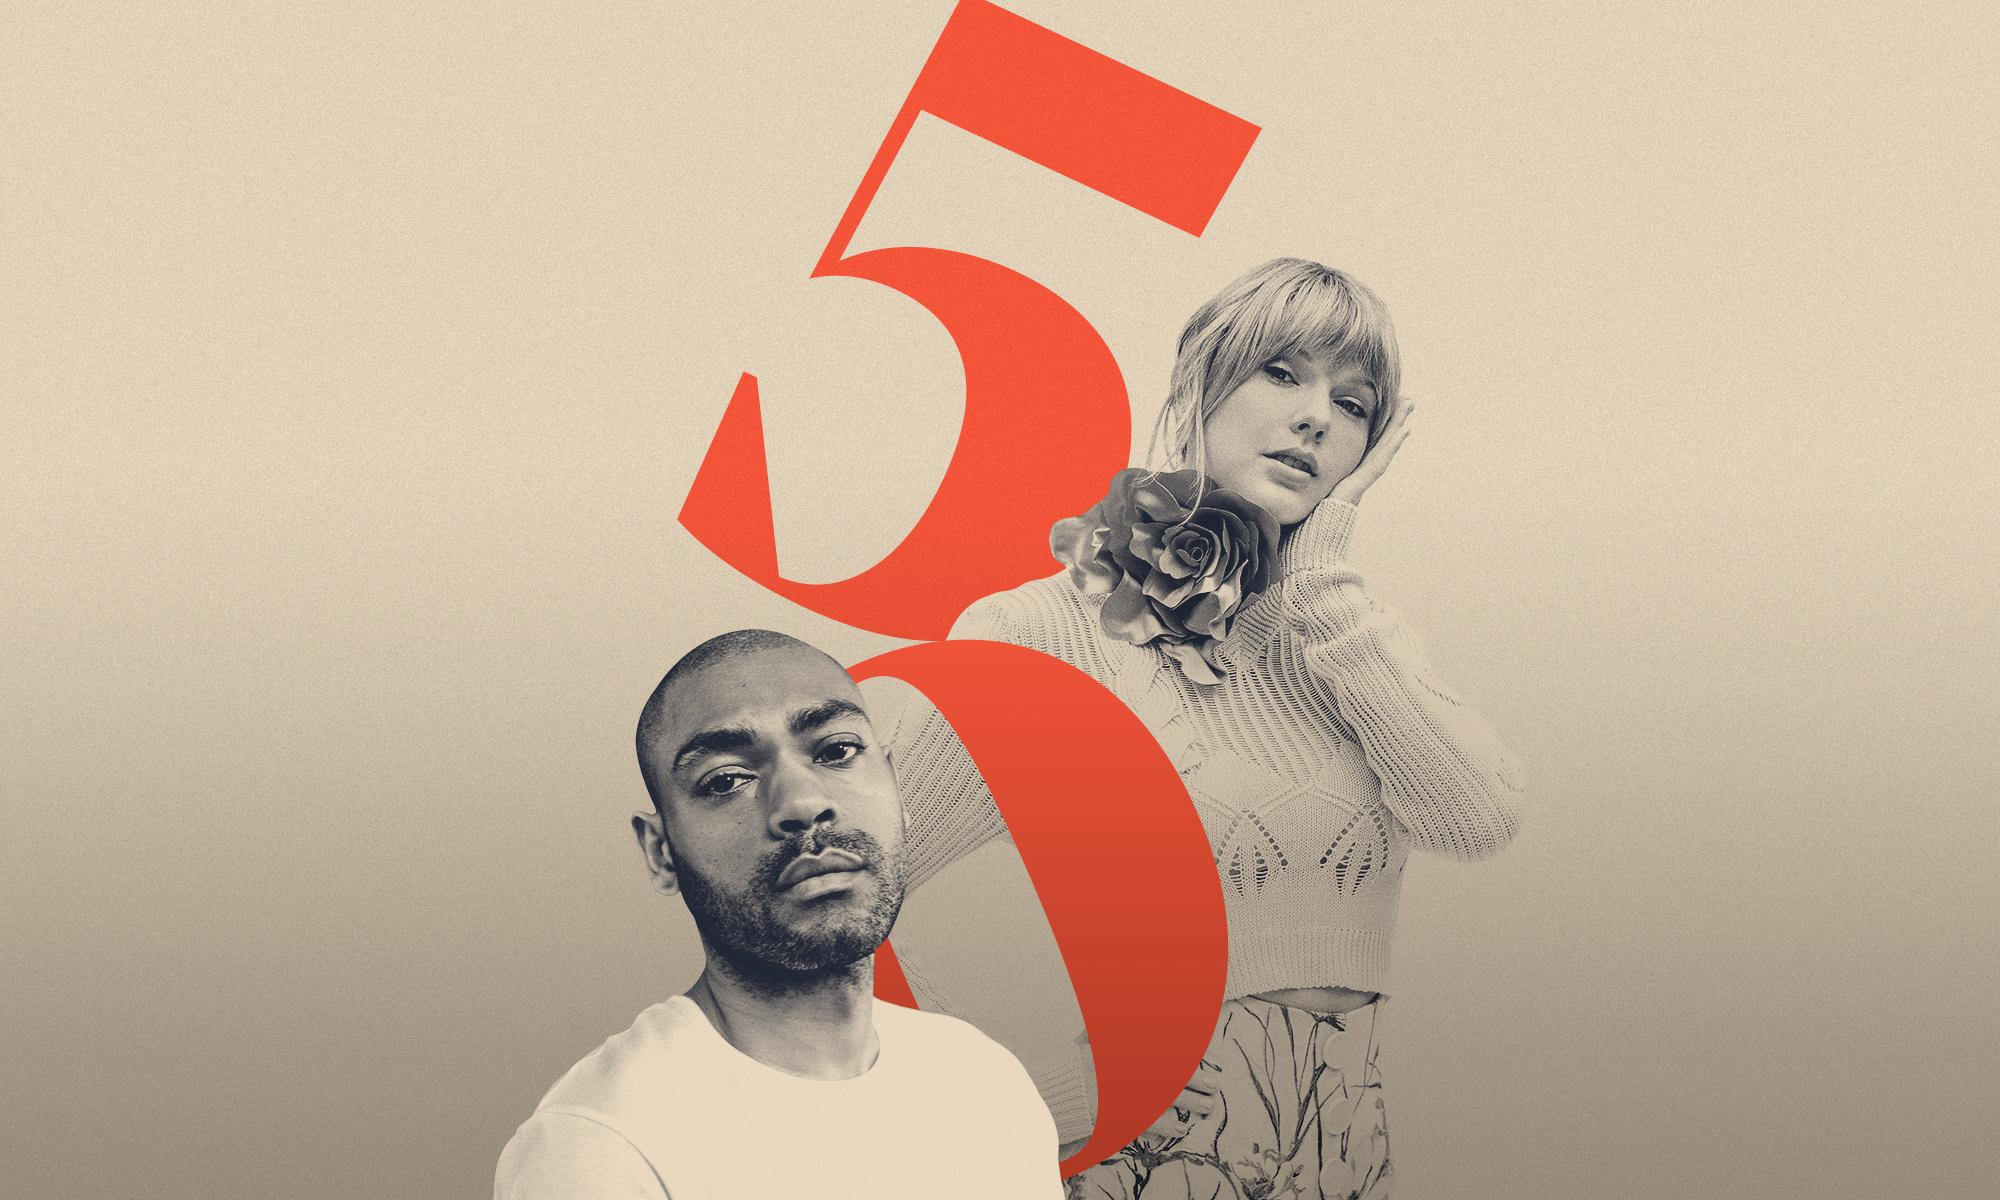 50 great tracks for August from Taylor Swift, Kano, Jenny Hval and more